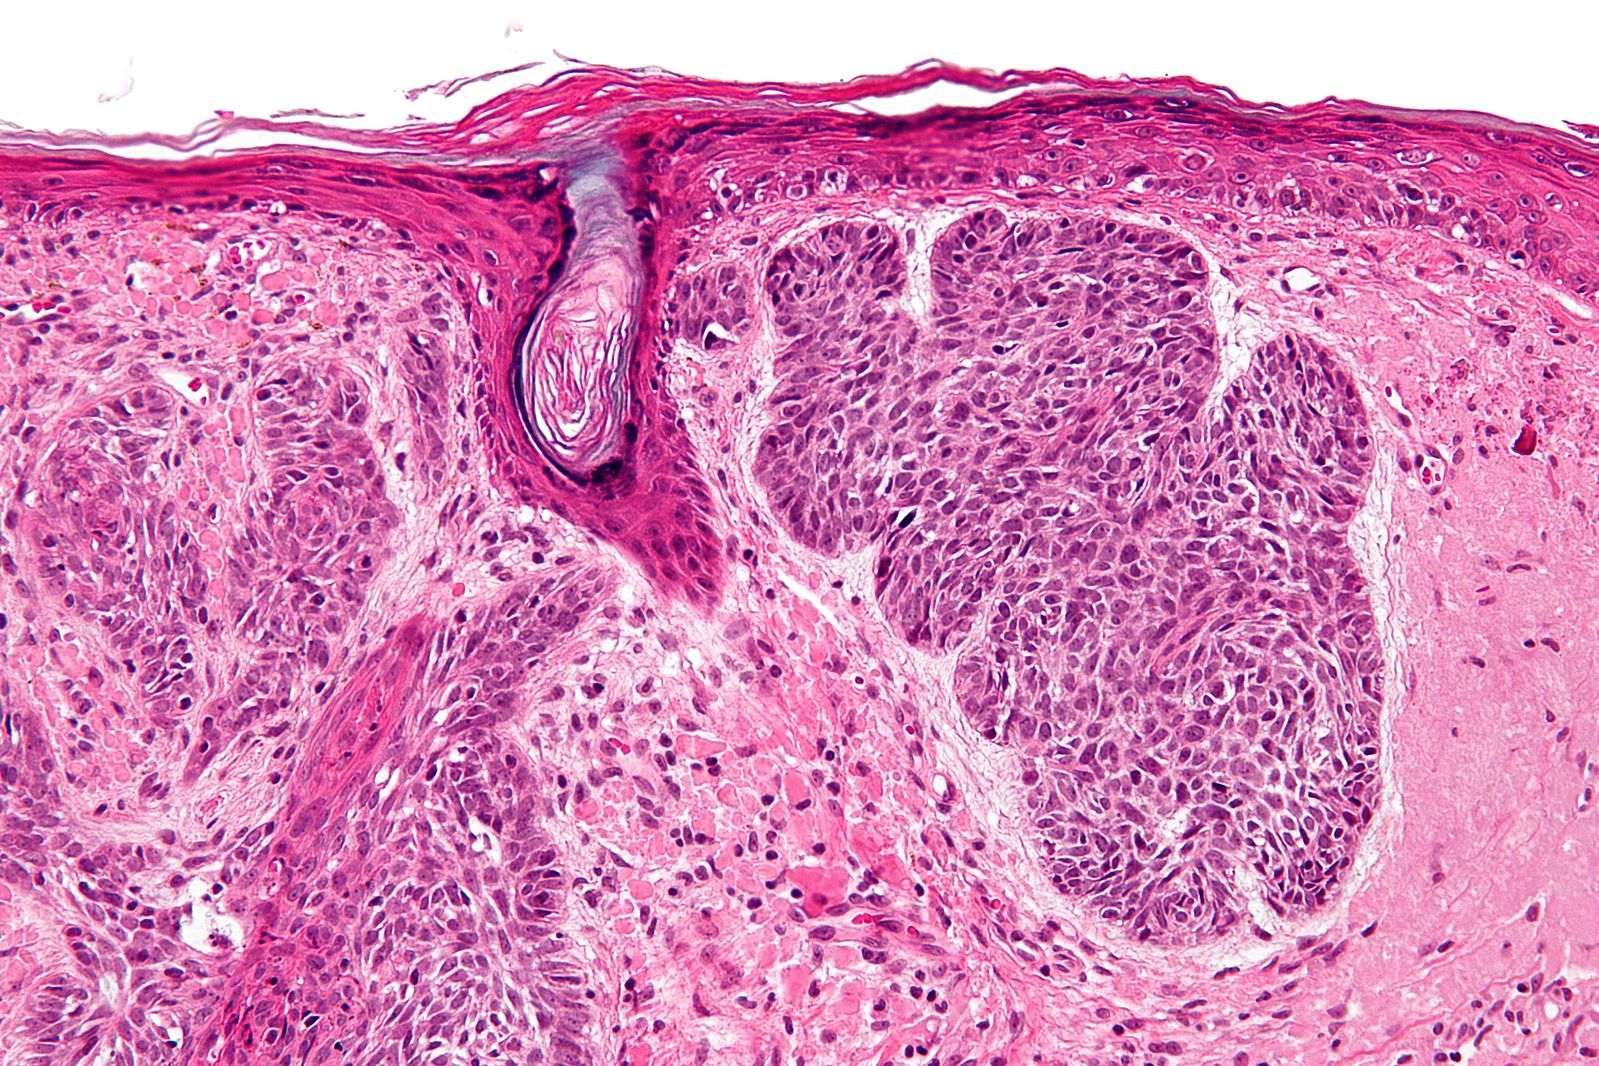 Undifferential carcinoma in young girl